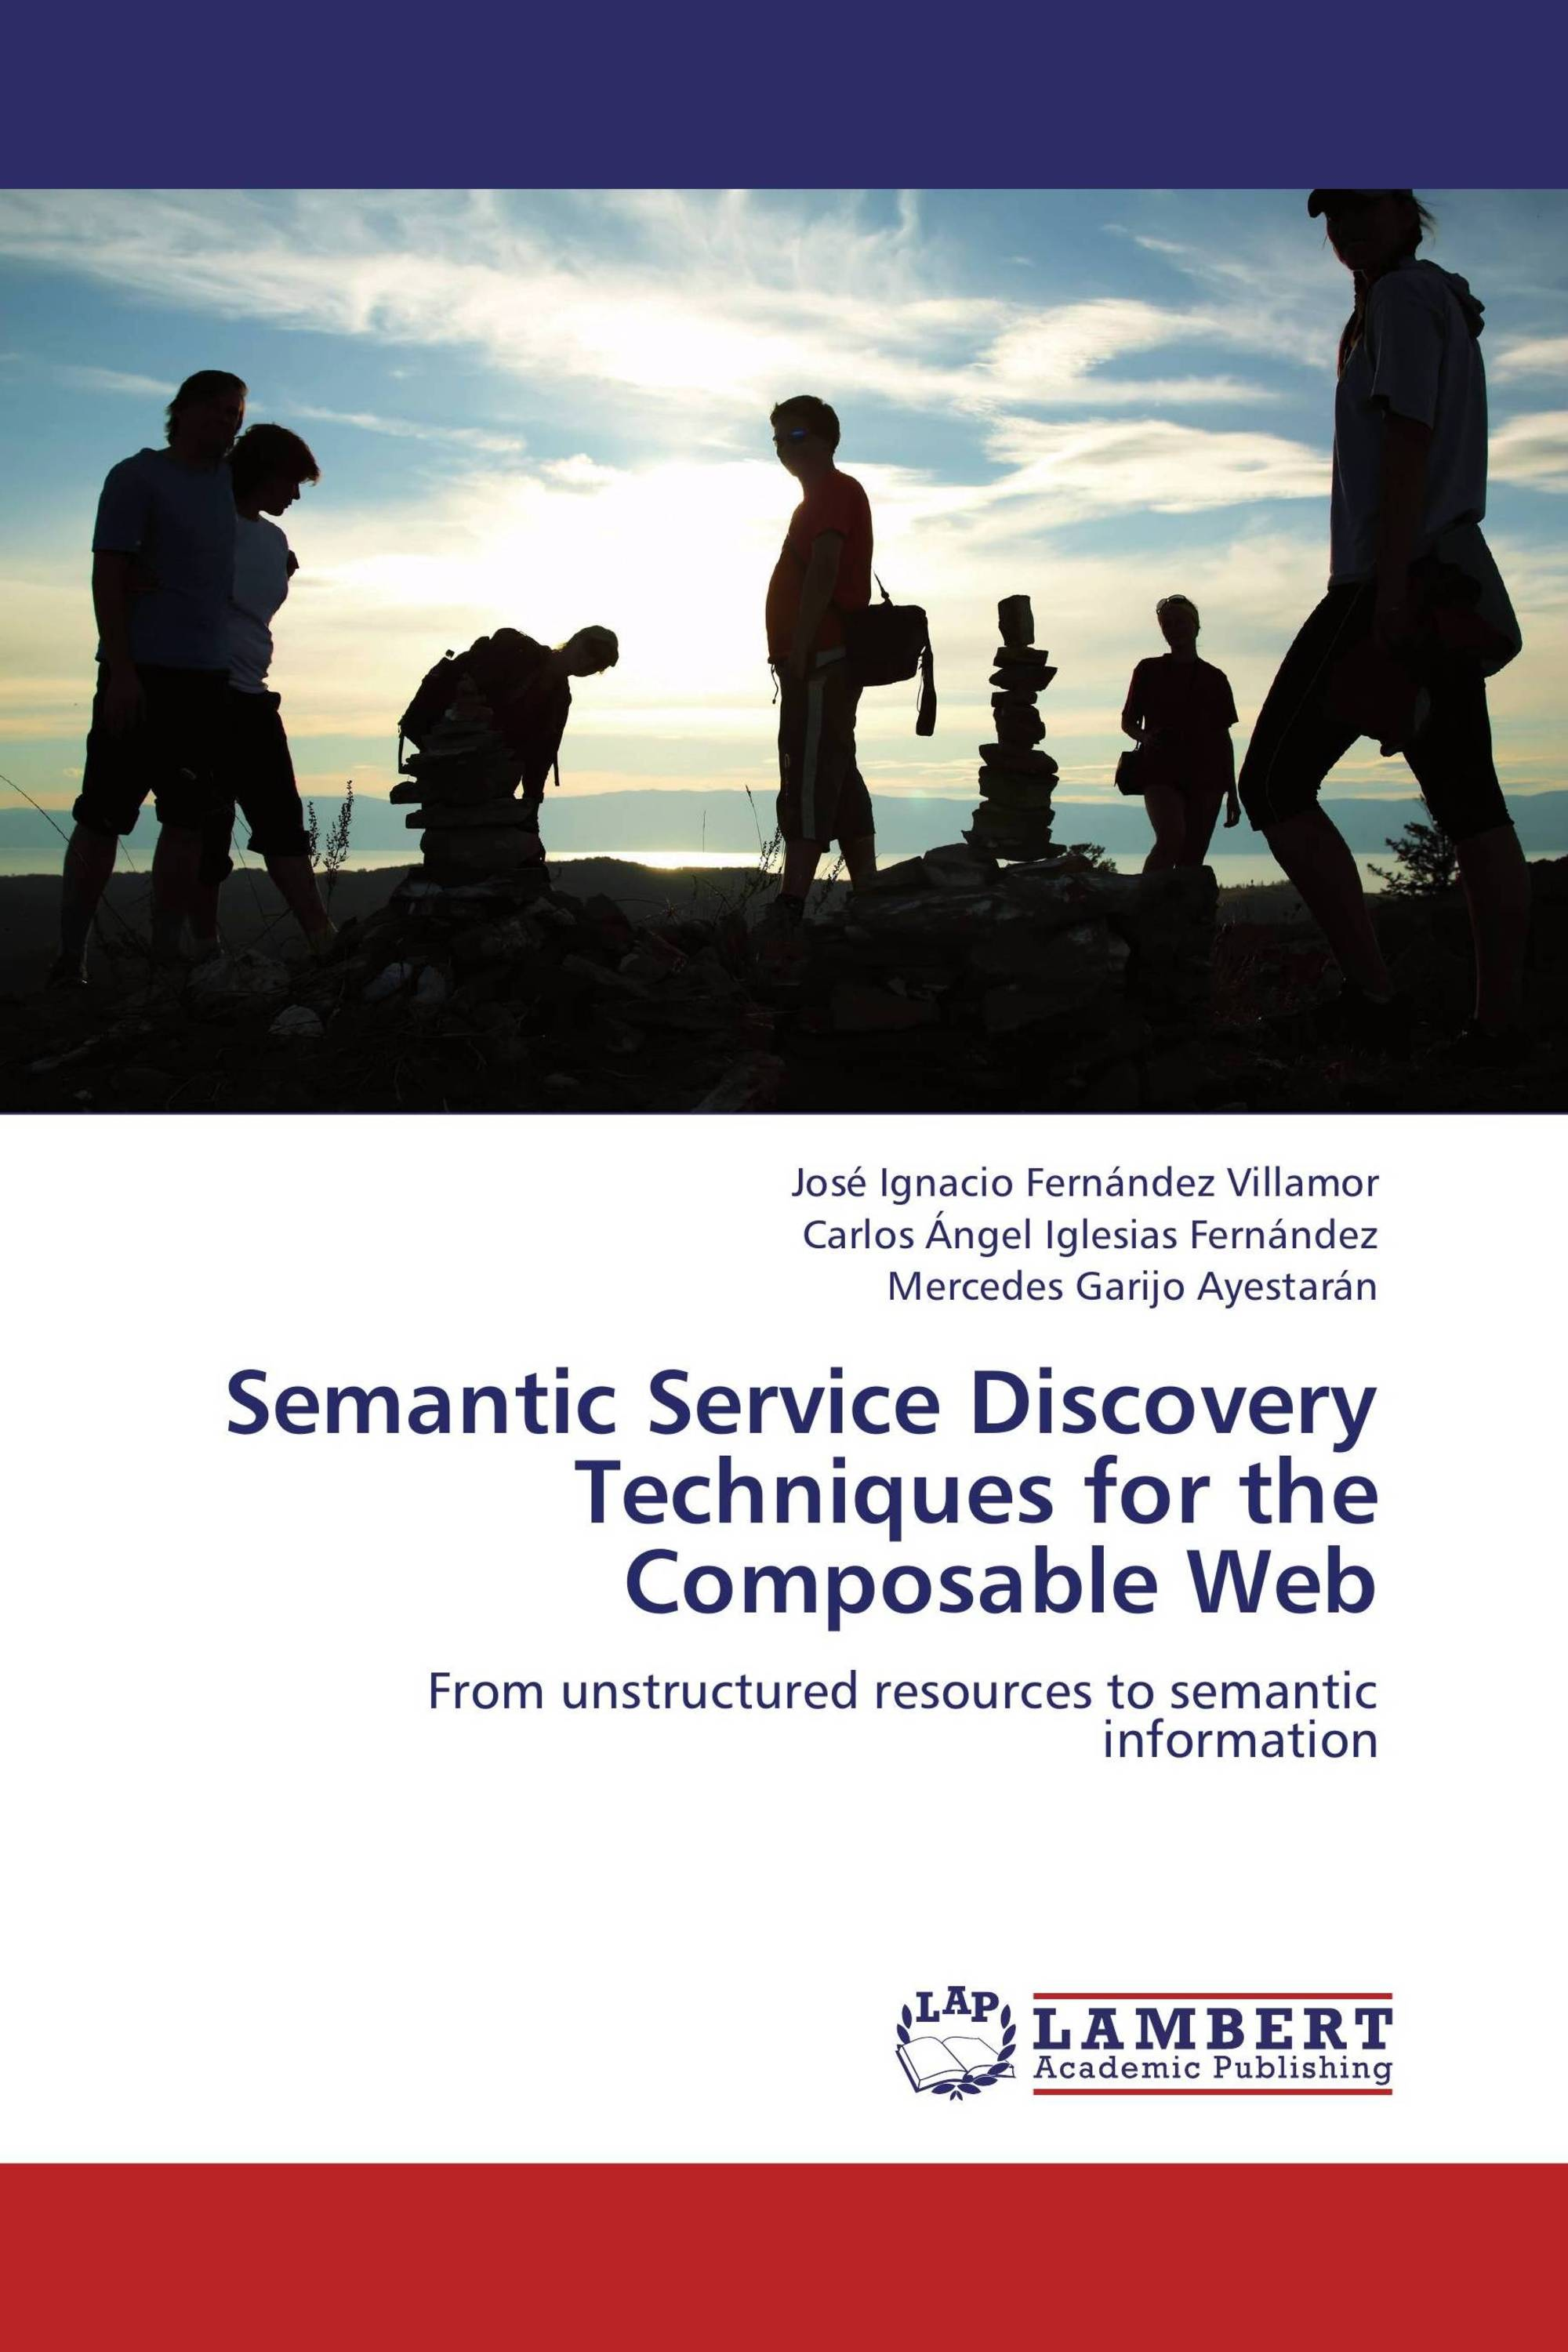 Semantic Service Discovery Techniques for the Composable Web